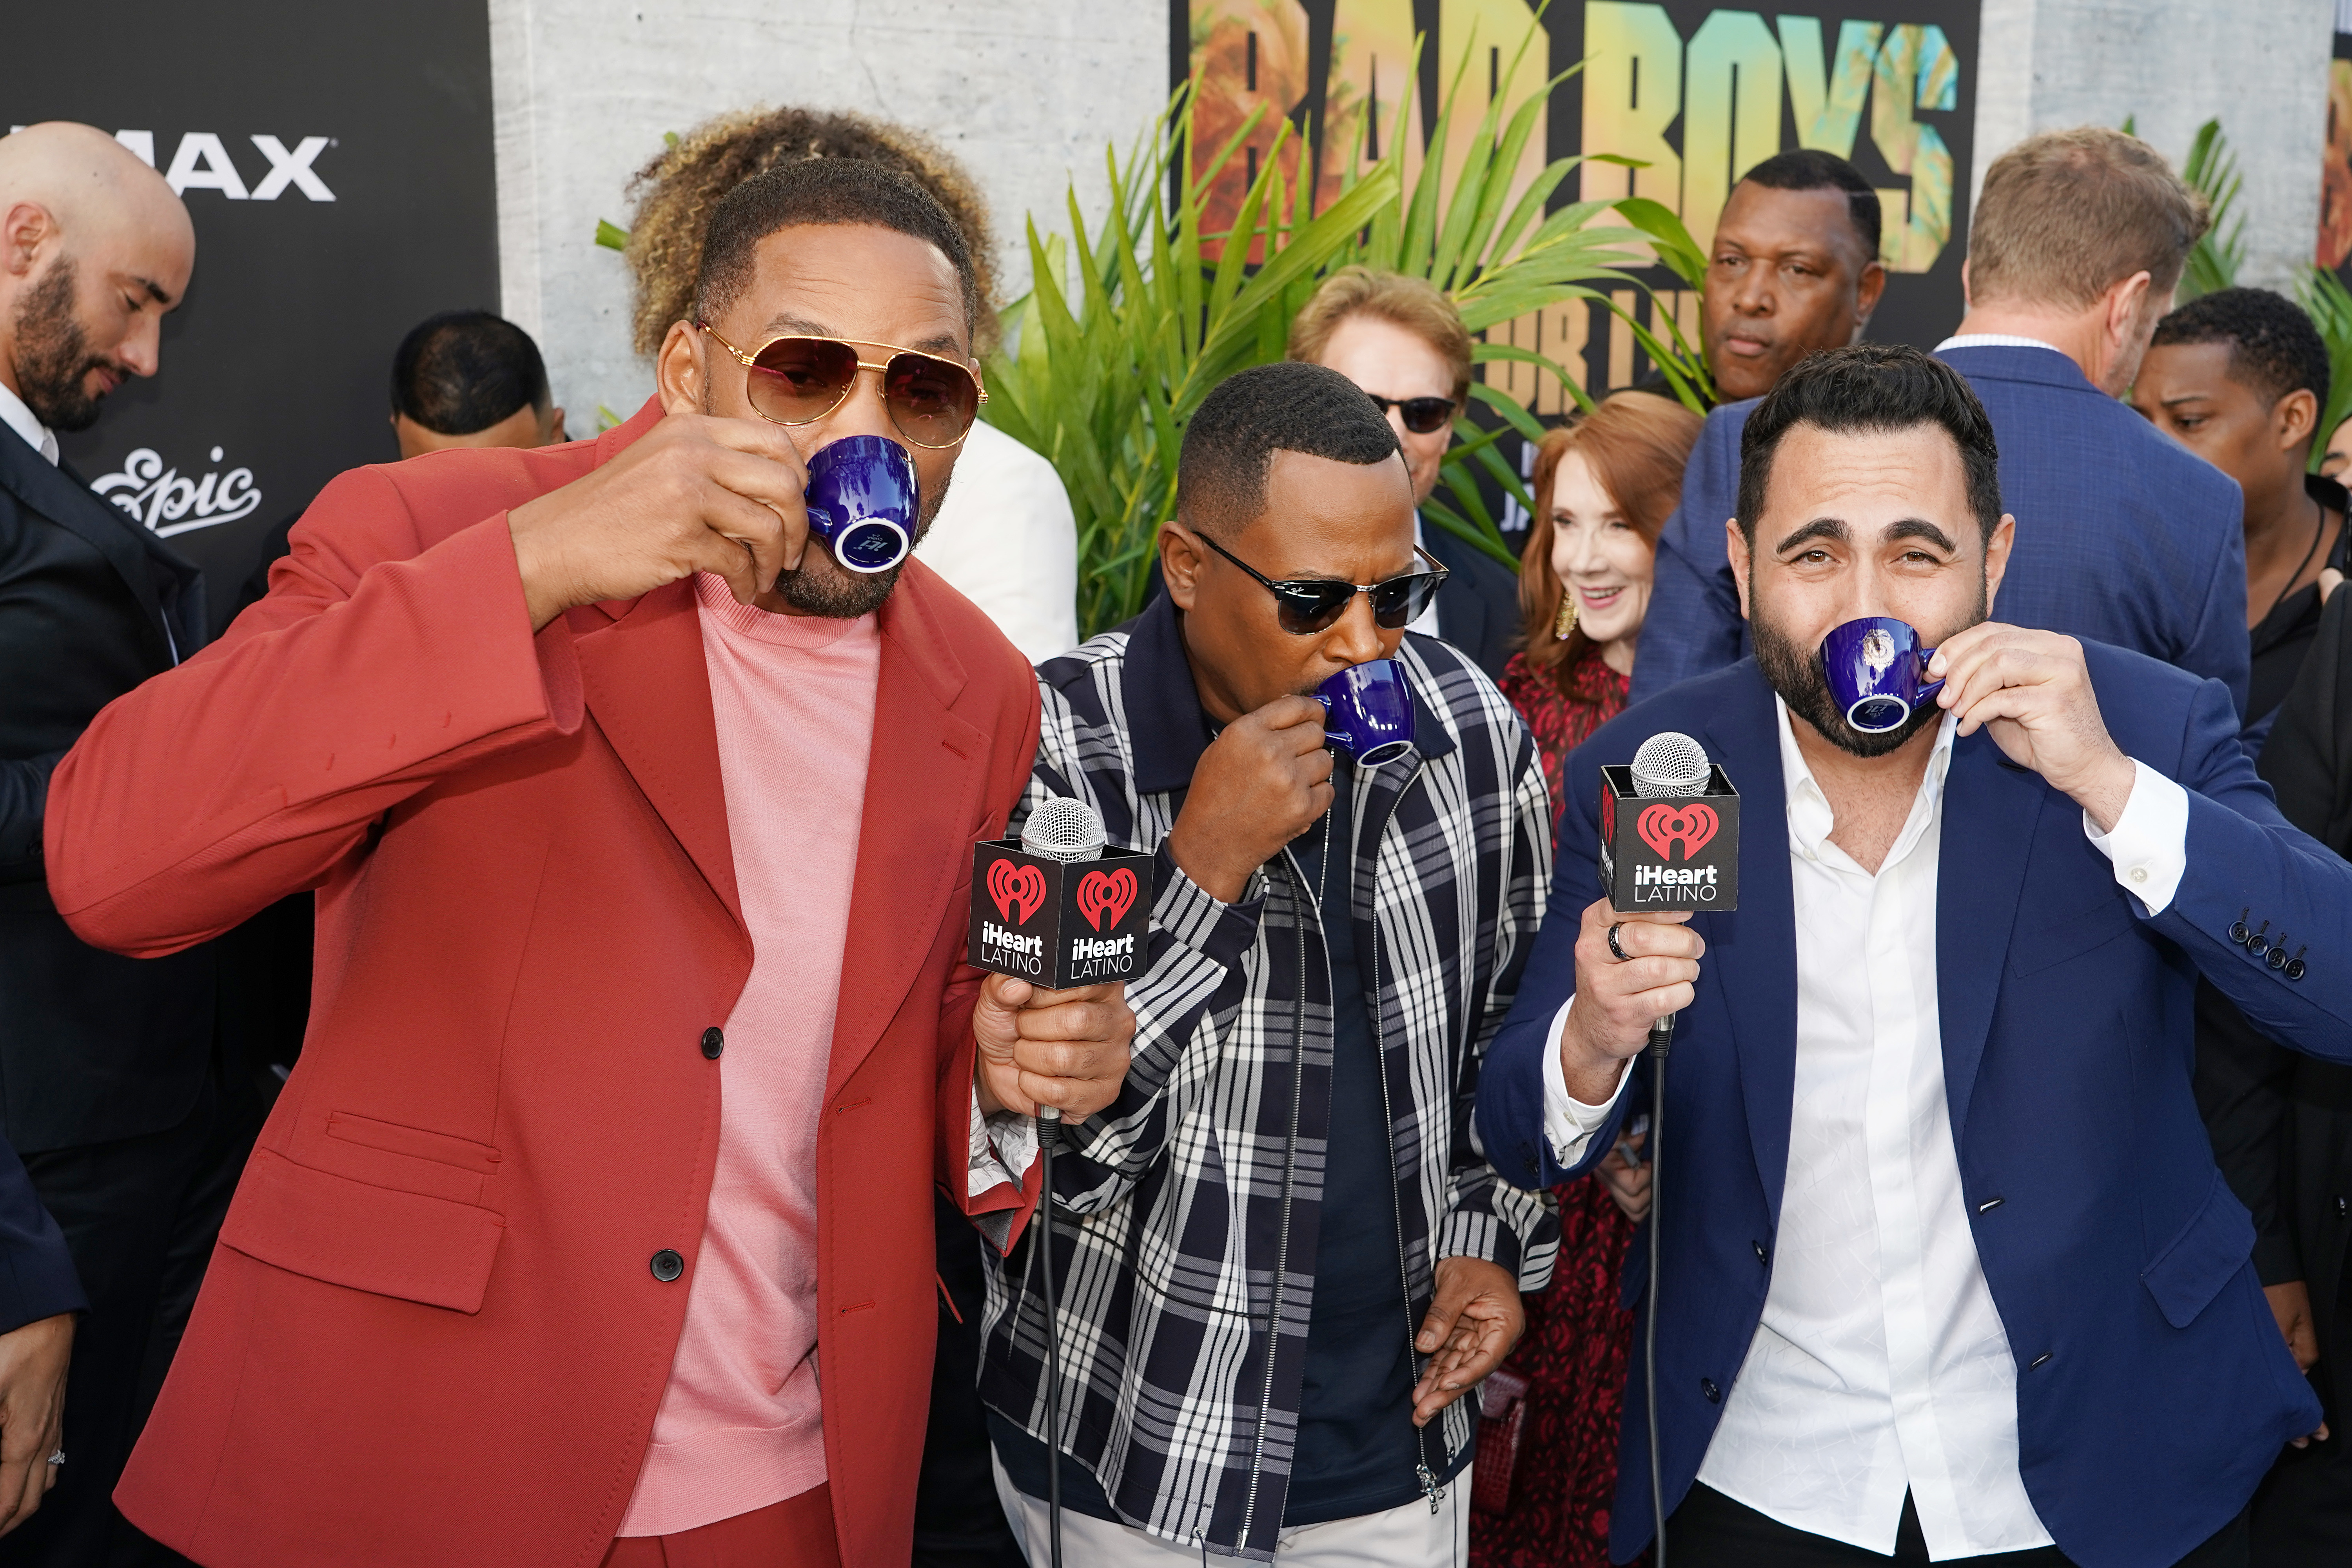 Will Smith, Martin Lawrence and Enrique Santos attend the Bad Boys For Life Miami premiere  in Miami on January 12, 2020.